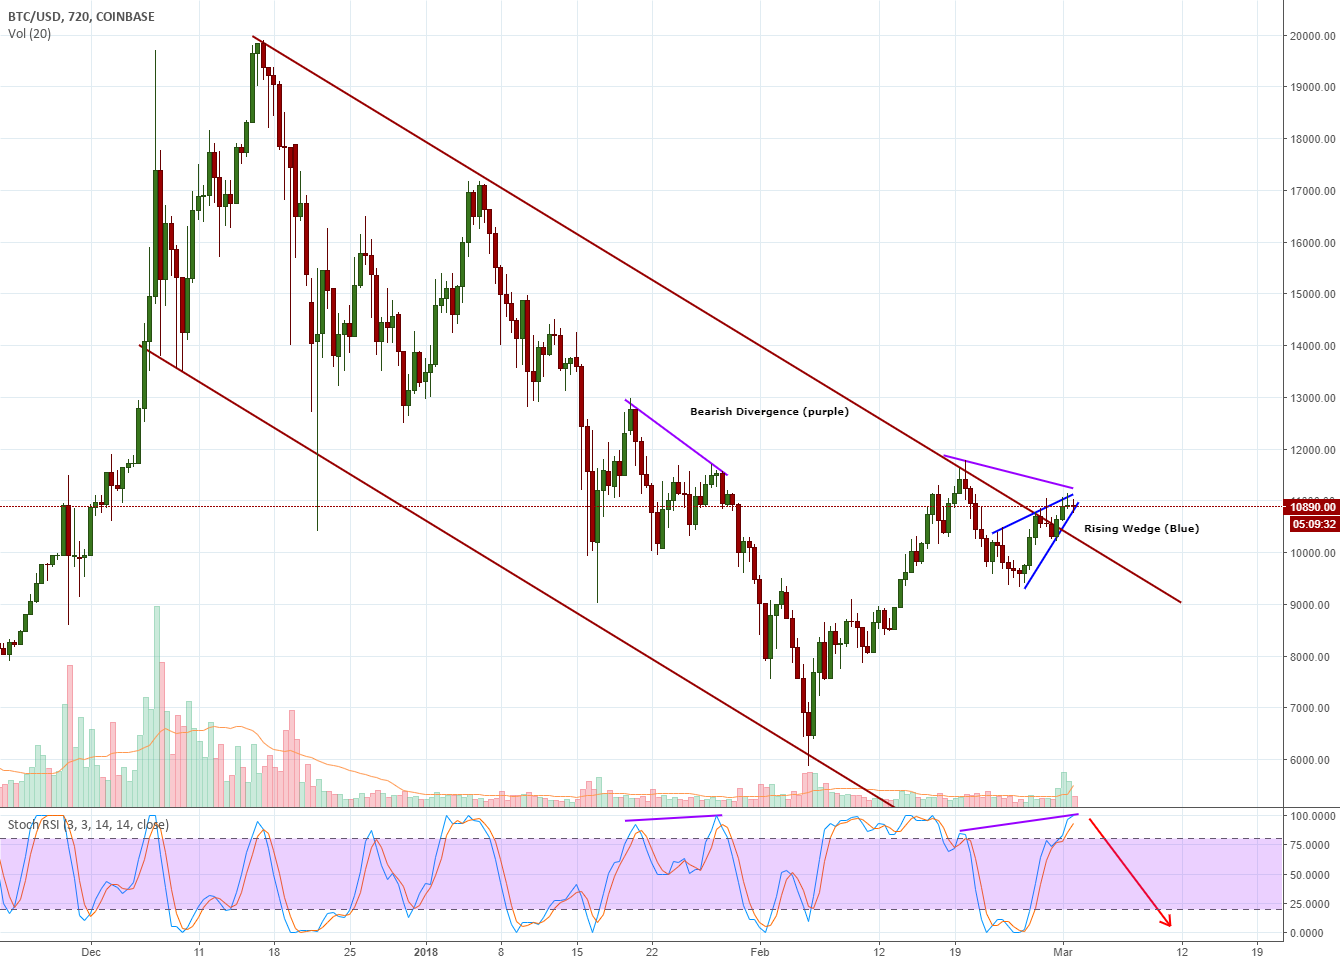 BTC - caution recommened